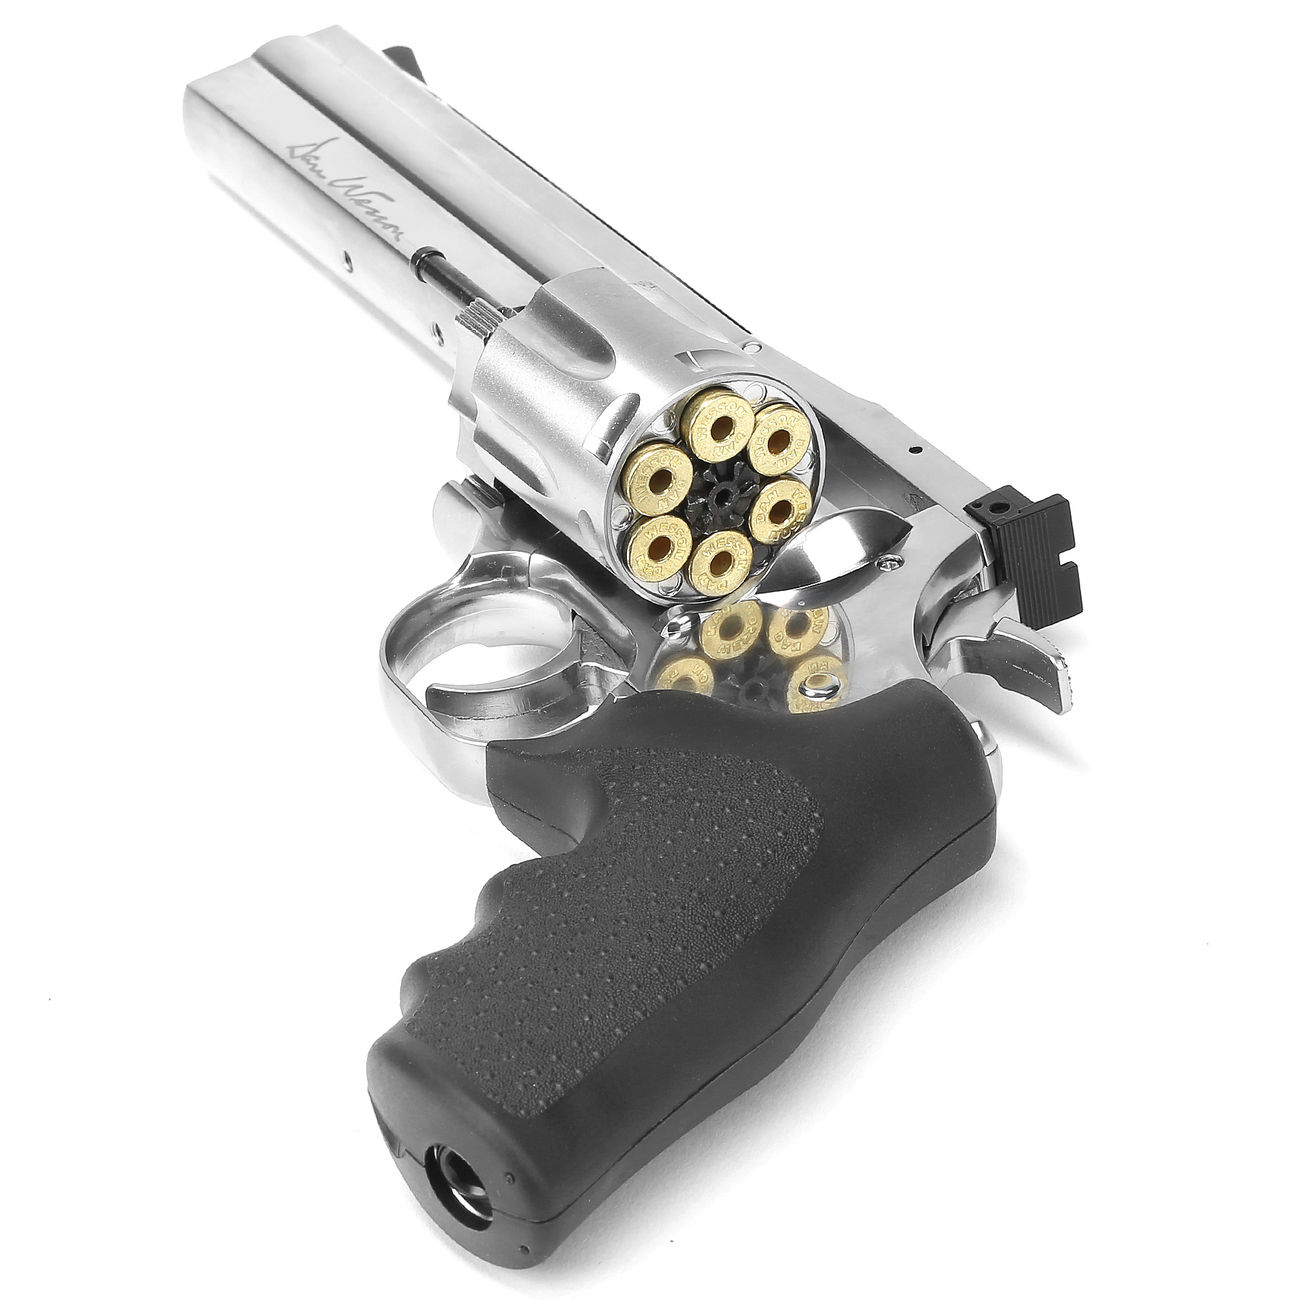 ASG Dan Wesson 715 6 Zoll Revolver Vollmetall CO2 6mm BB chrom Low Power Version 4